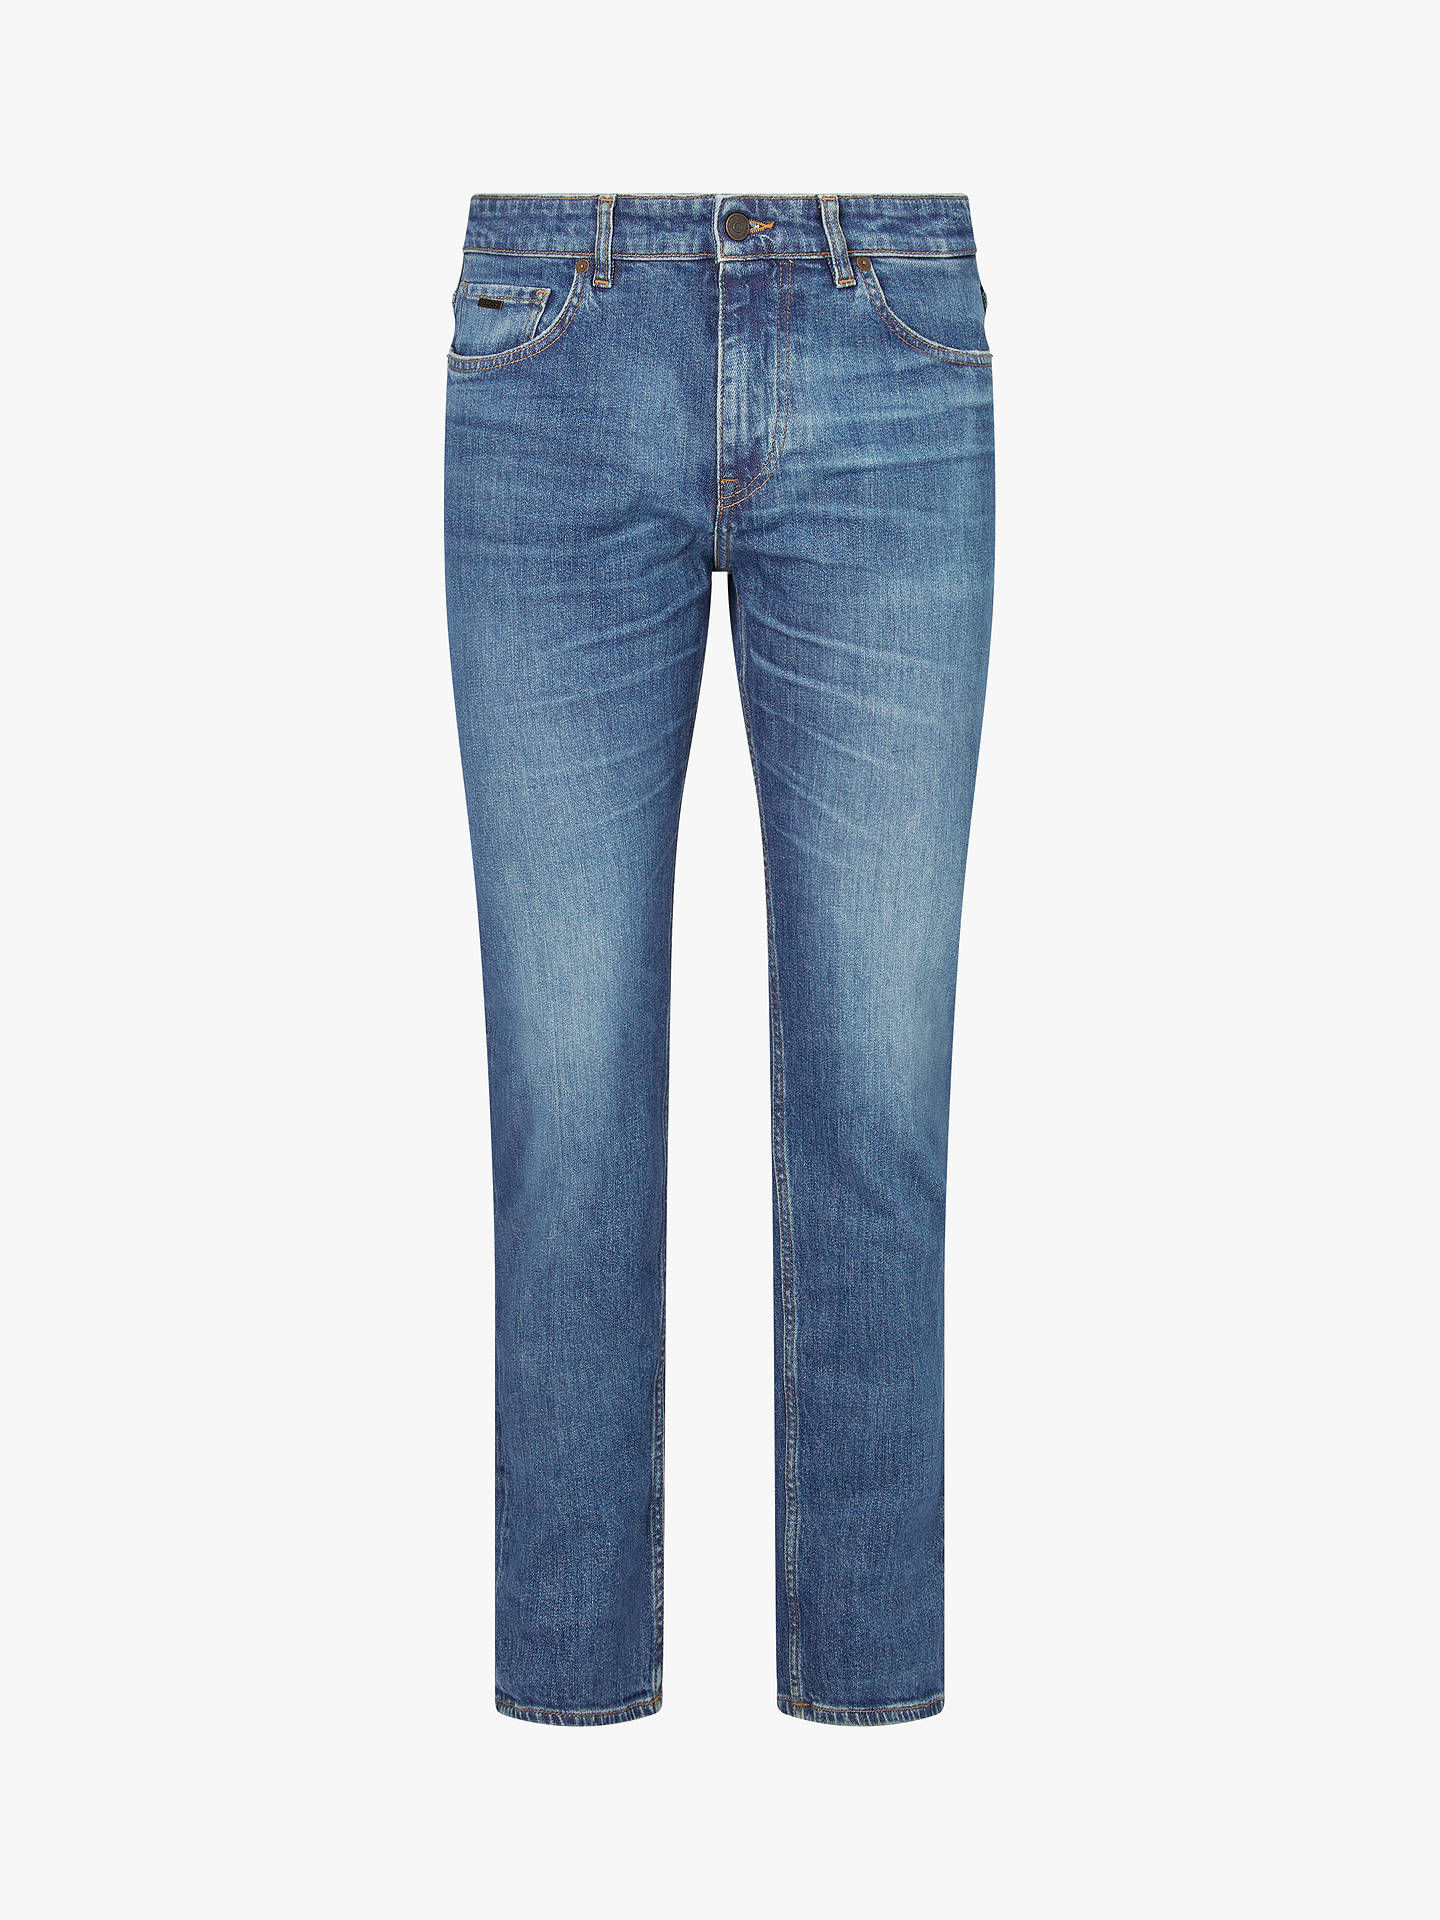 bc7869ab0 ... Buy BOSS Albany Straight Fit Jeans, Navy, 33R Online at johnlewis.com  ...